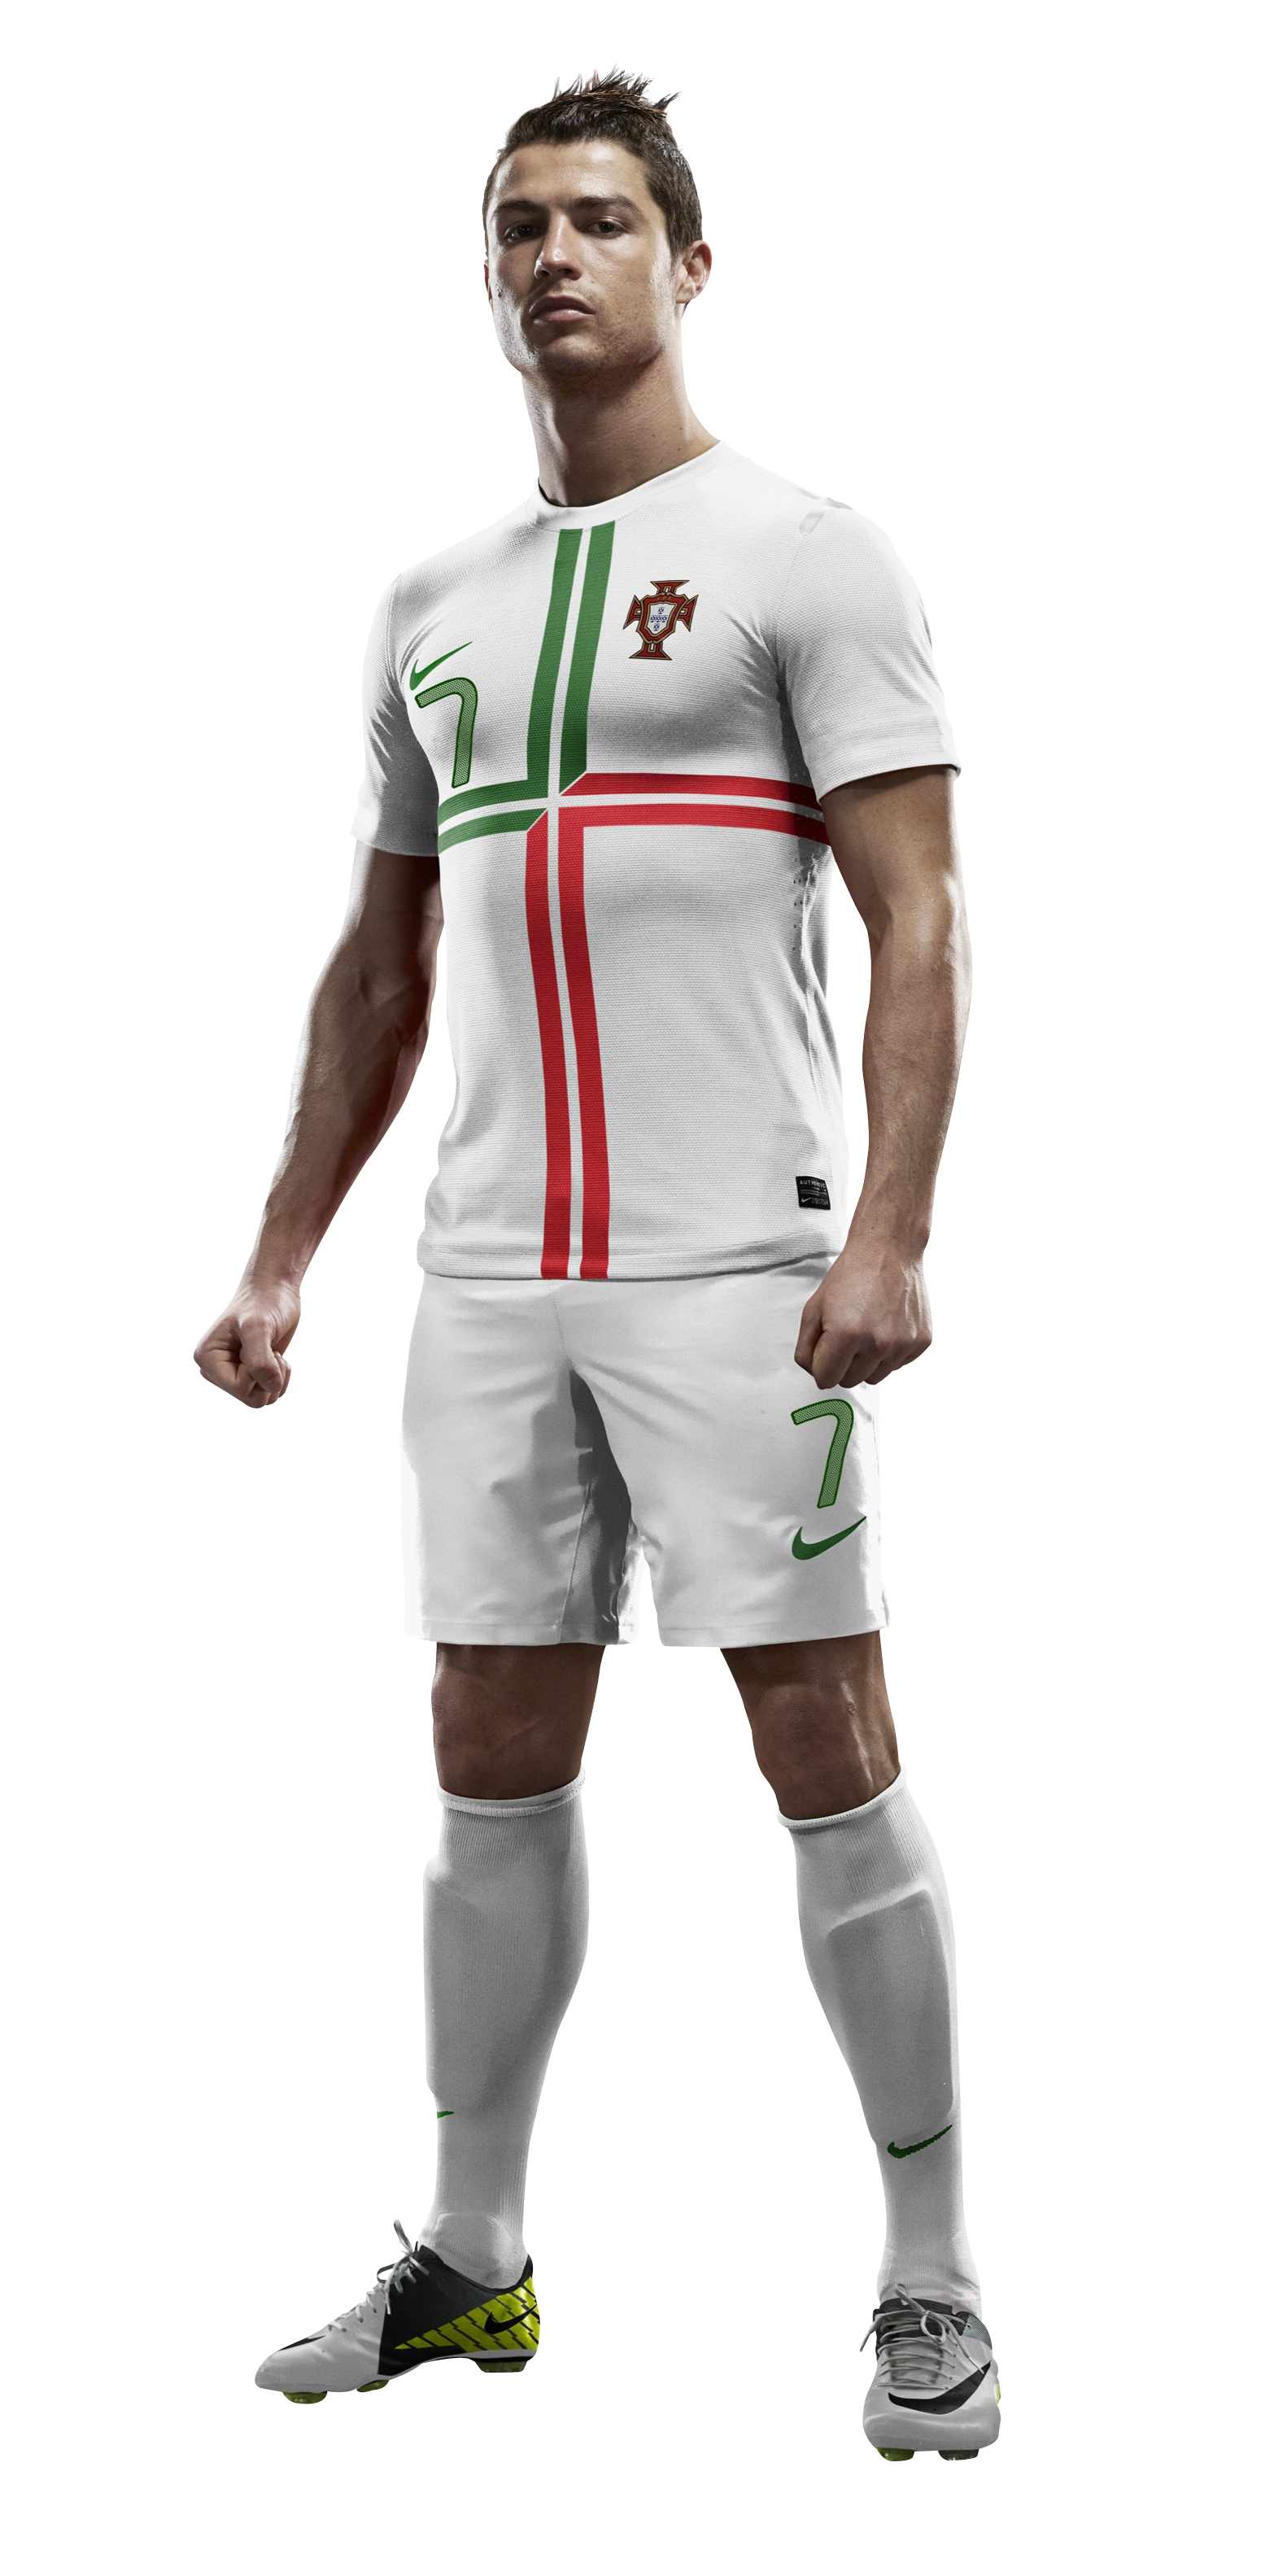 ronaldo png transparent